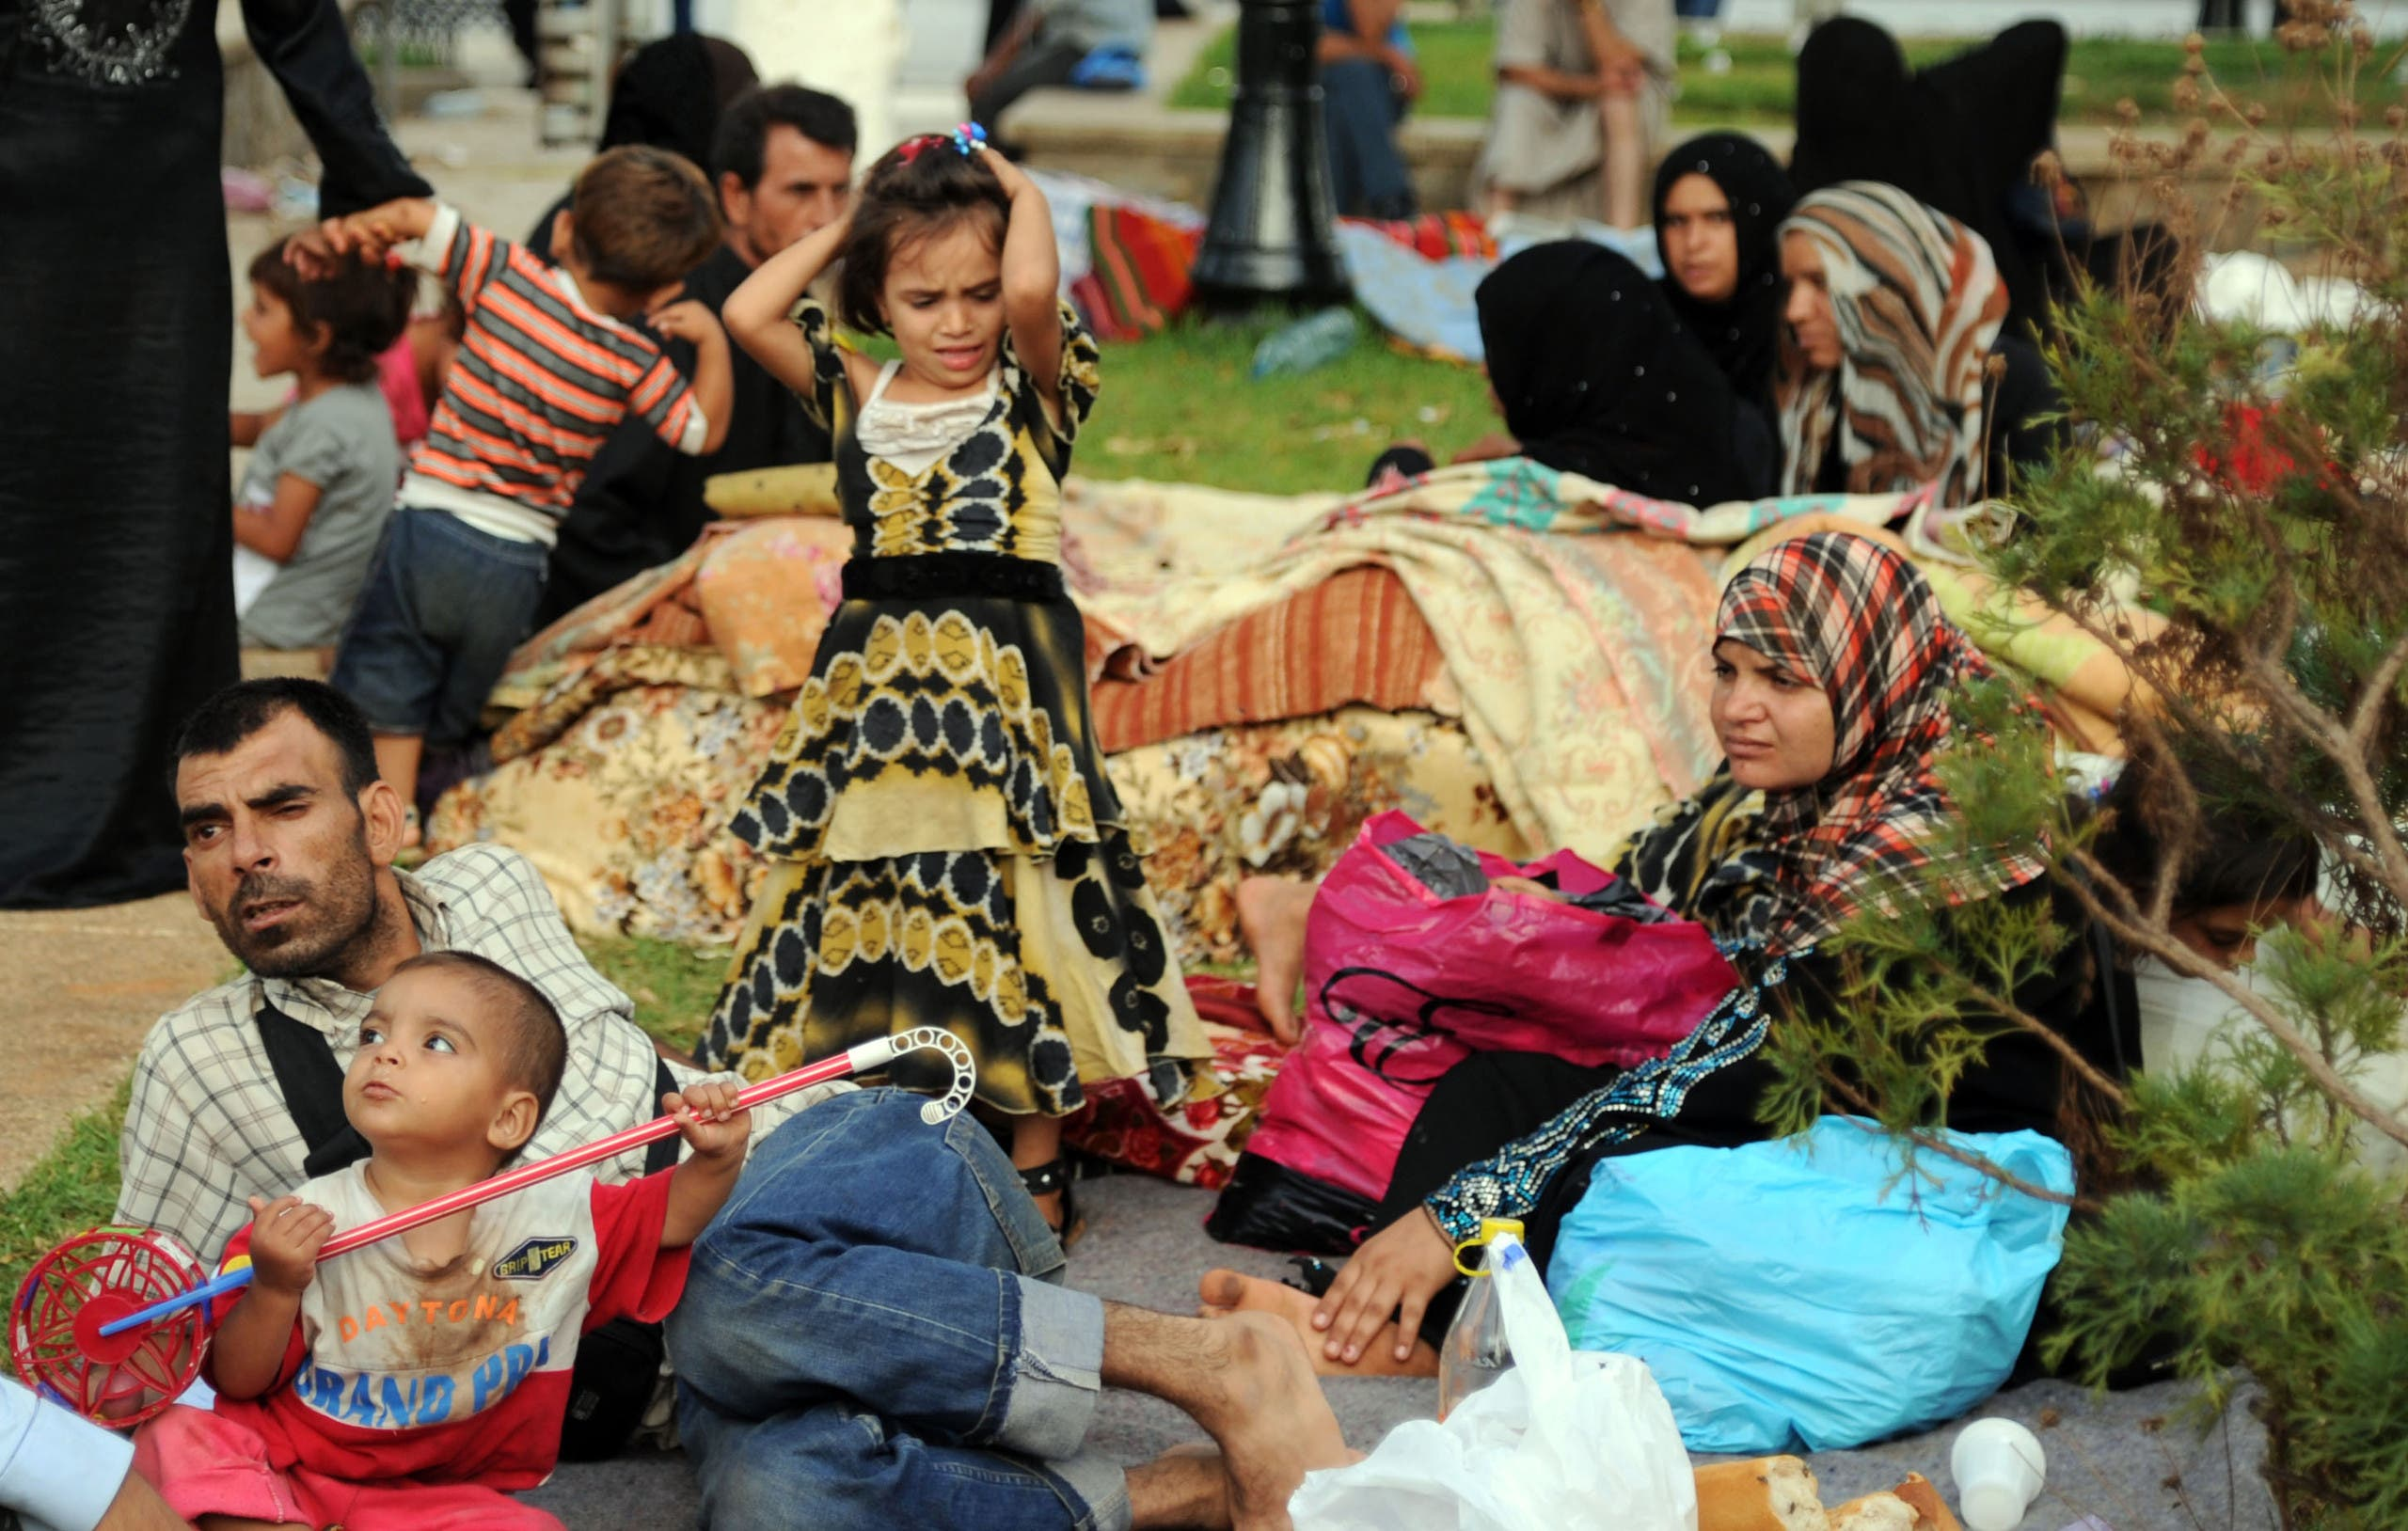 Syrian nationals fleeing the conflict in their home country gather in a garden in Port Said Square in Algiers on July 28, 2012. (File photo: AFP)